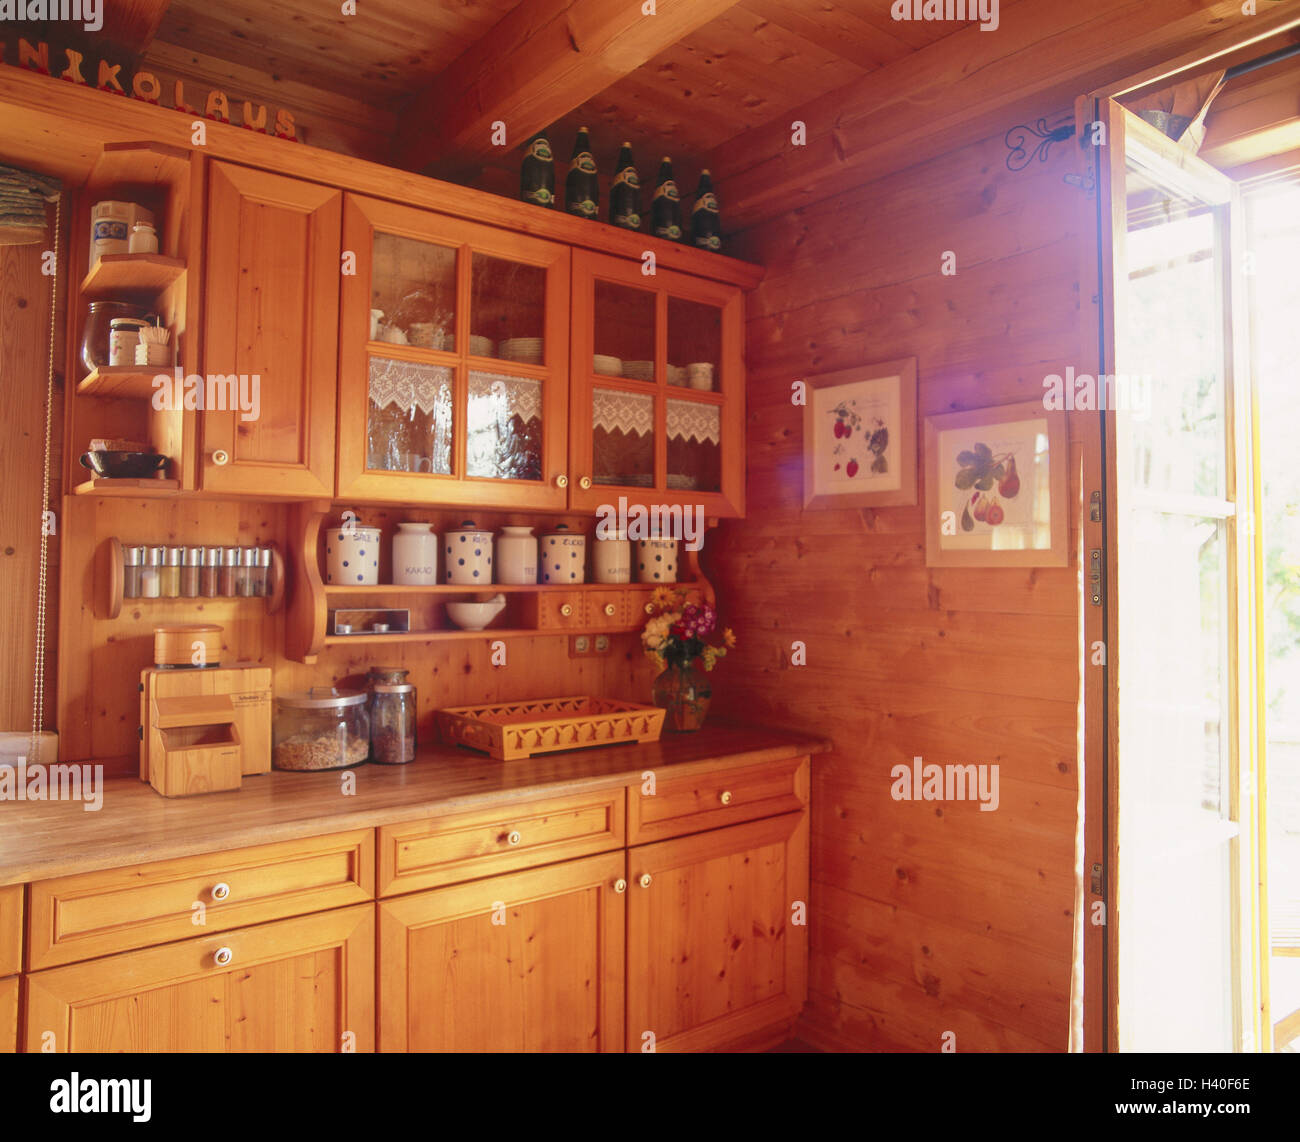 Kitchen Unit Rural Wall Covering Wooden Walls Cosiness Setup Rustic Rurally Country House Style Residential Home Decor